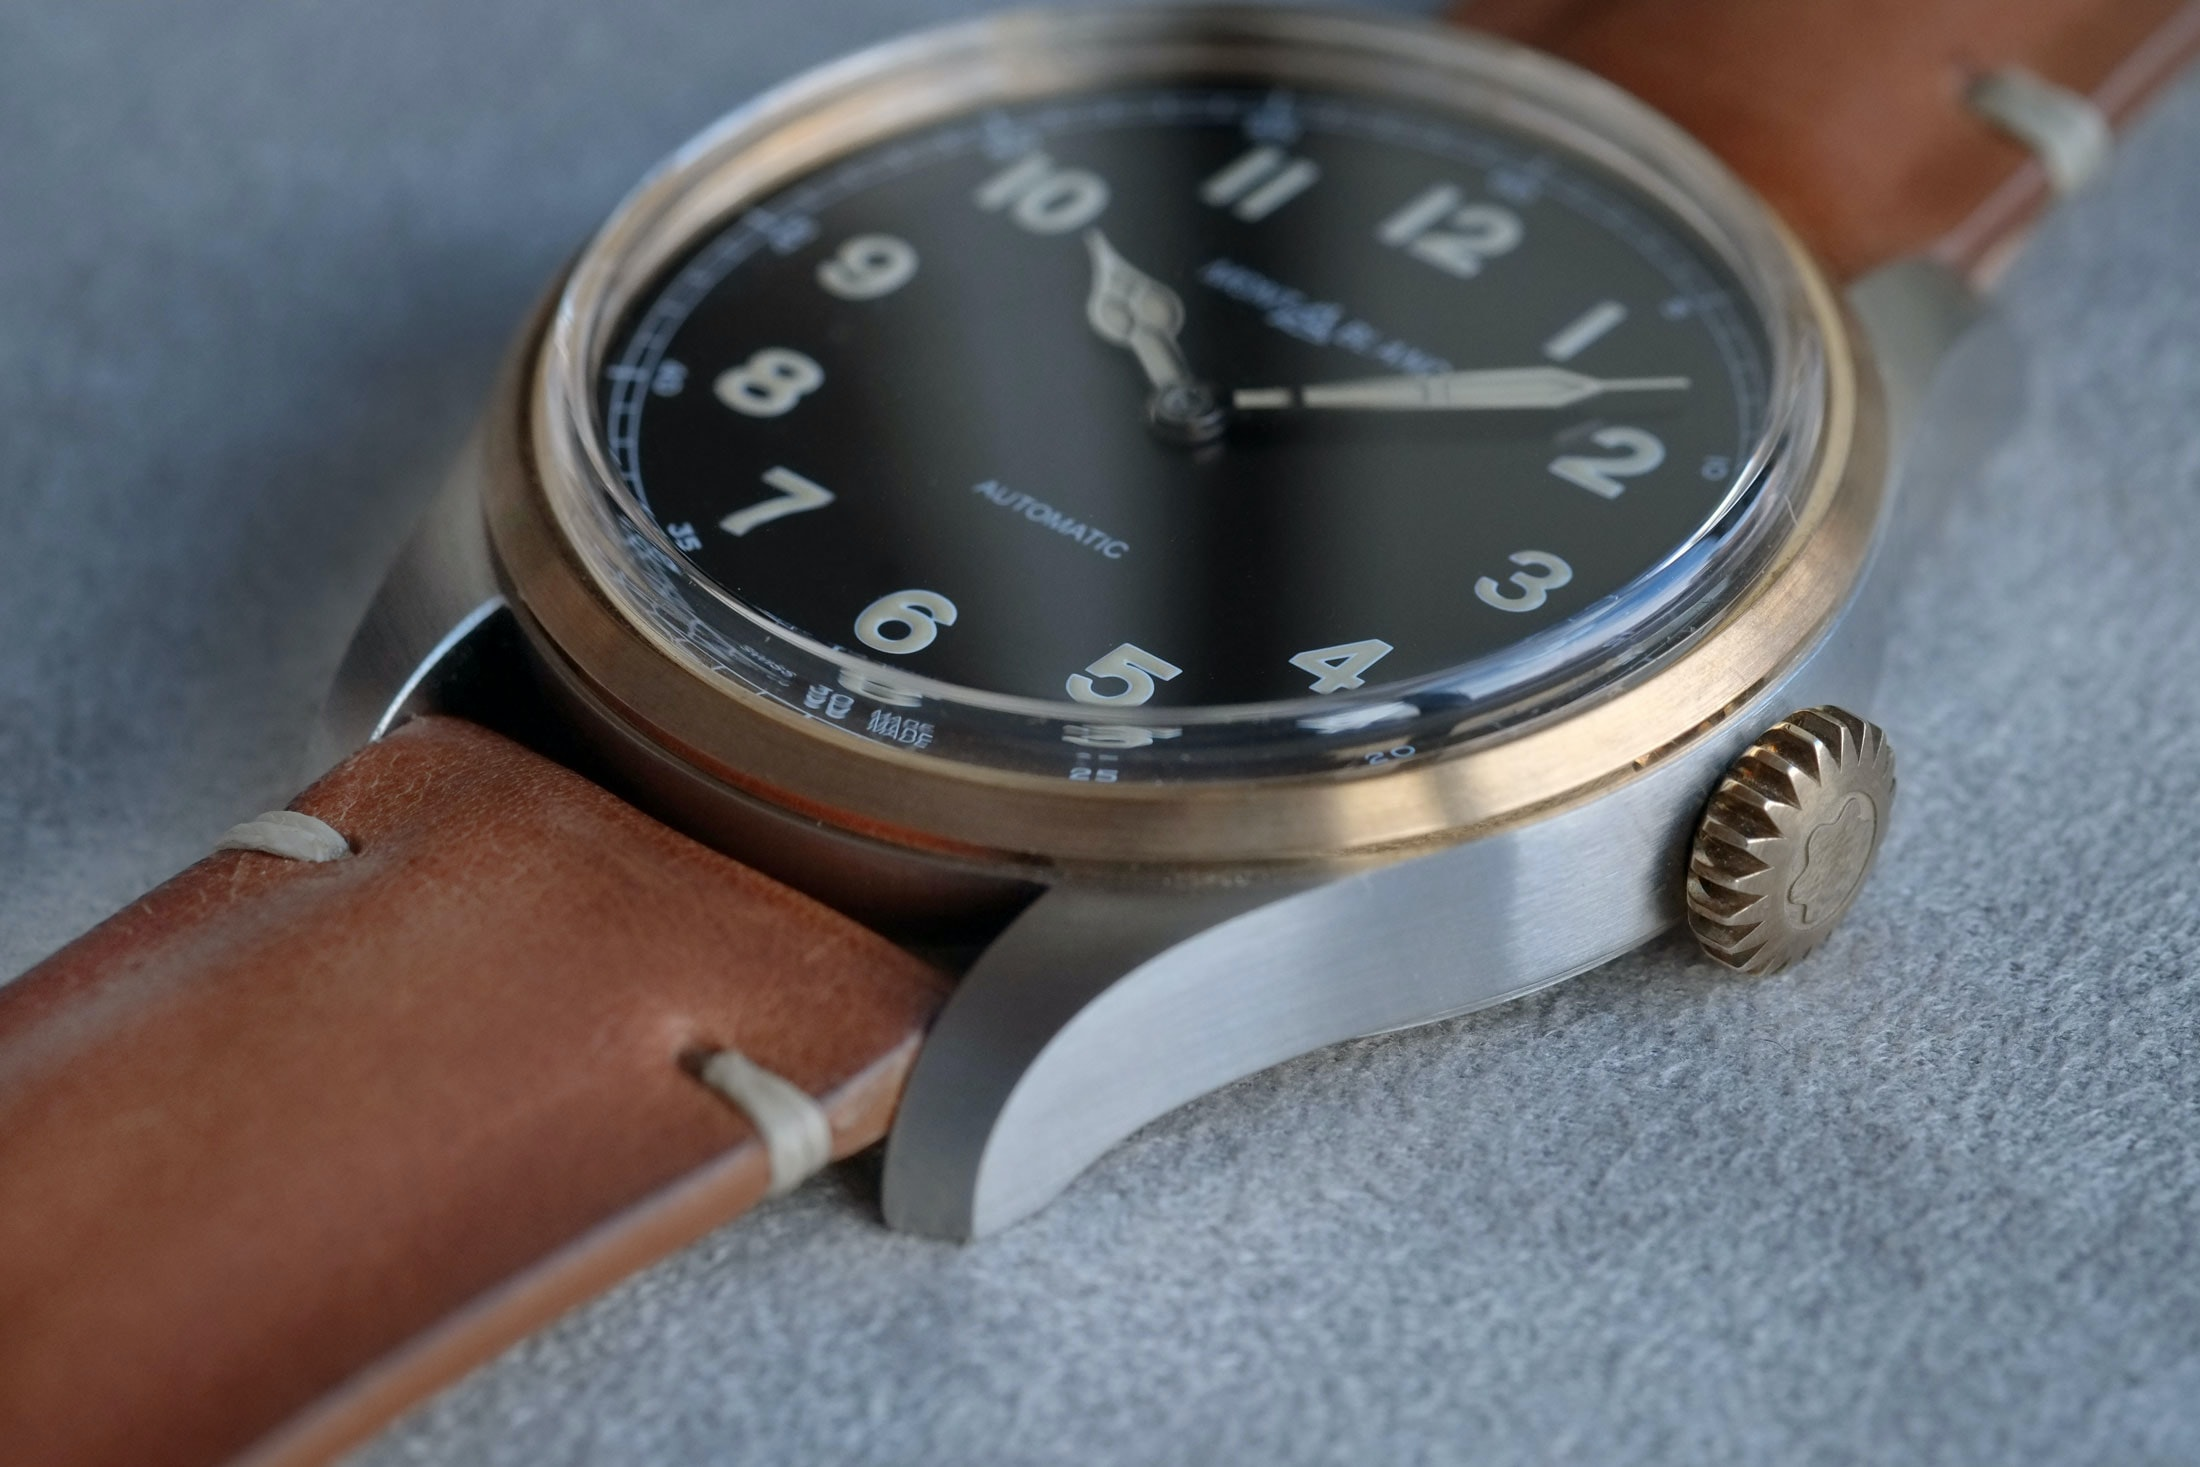 two tone steel bronze 1858 automatic montblanc Introducing: The Montblanc 1858 Automatic And 1858 Automatic Dual Time, Two-Tone In Stainless Steel And Bronze (Live Pics & Pricing) Introducing: The Montblanc 1858 Automatic And 1858 Automatic Dual Time, Two-Tone In Stainless Steel And Bronze (Live Pics & Pricing) montblanc 06